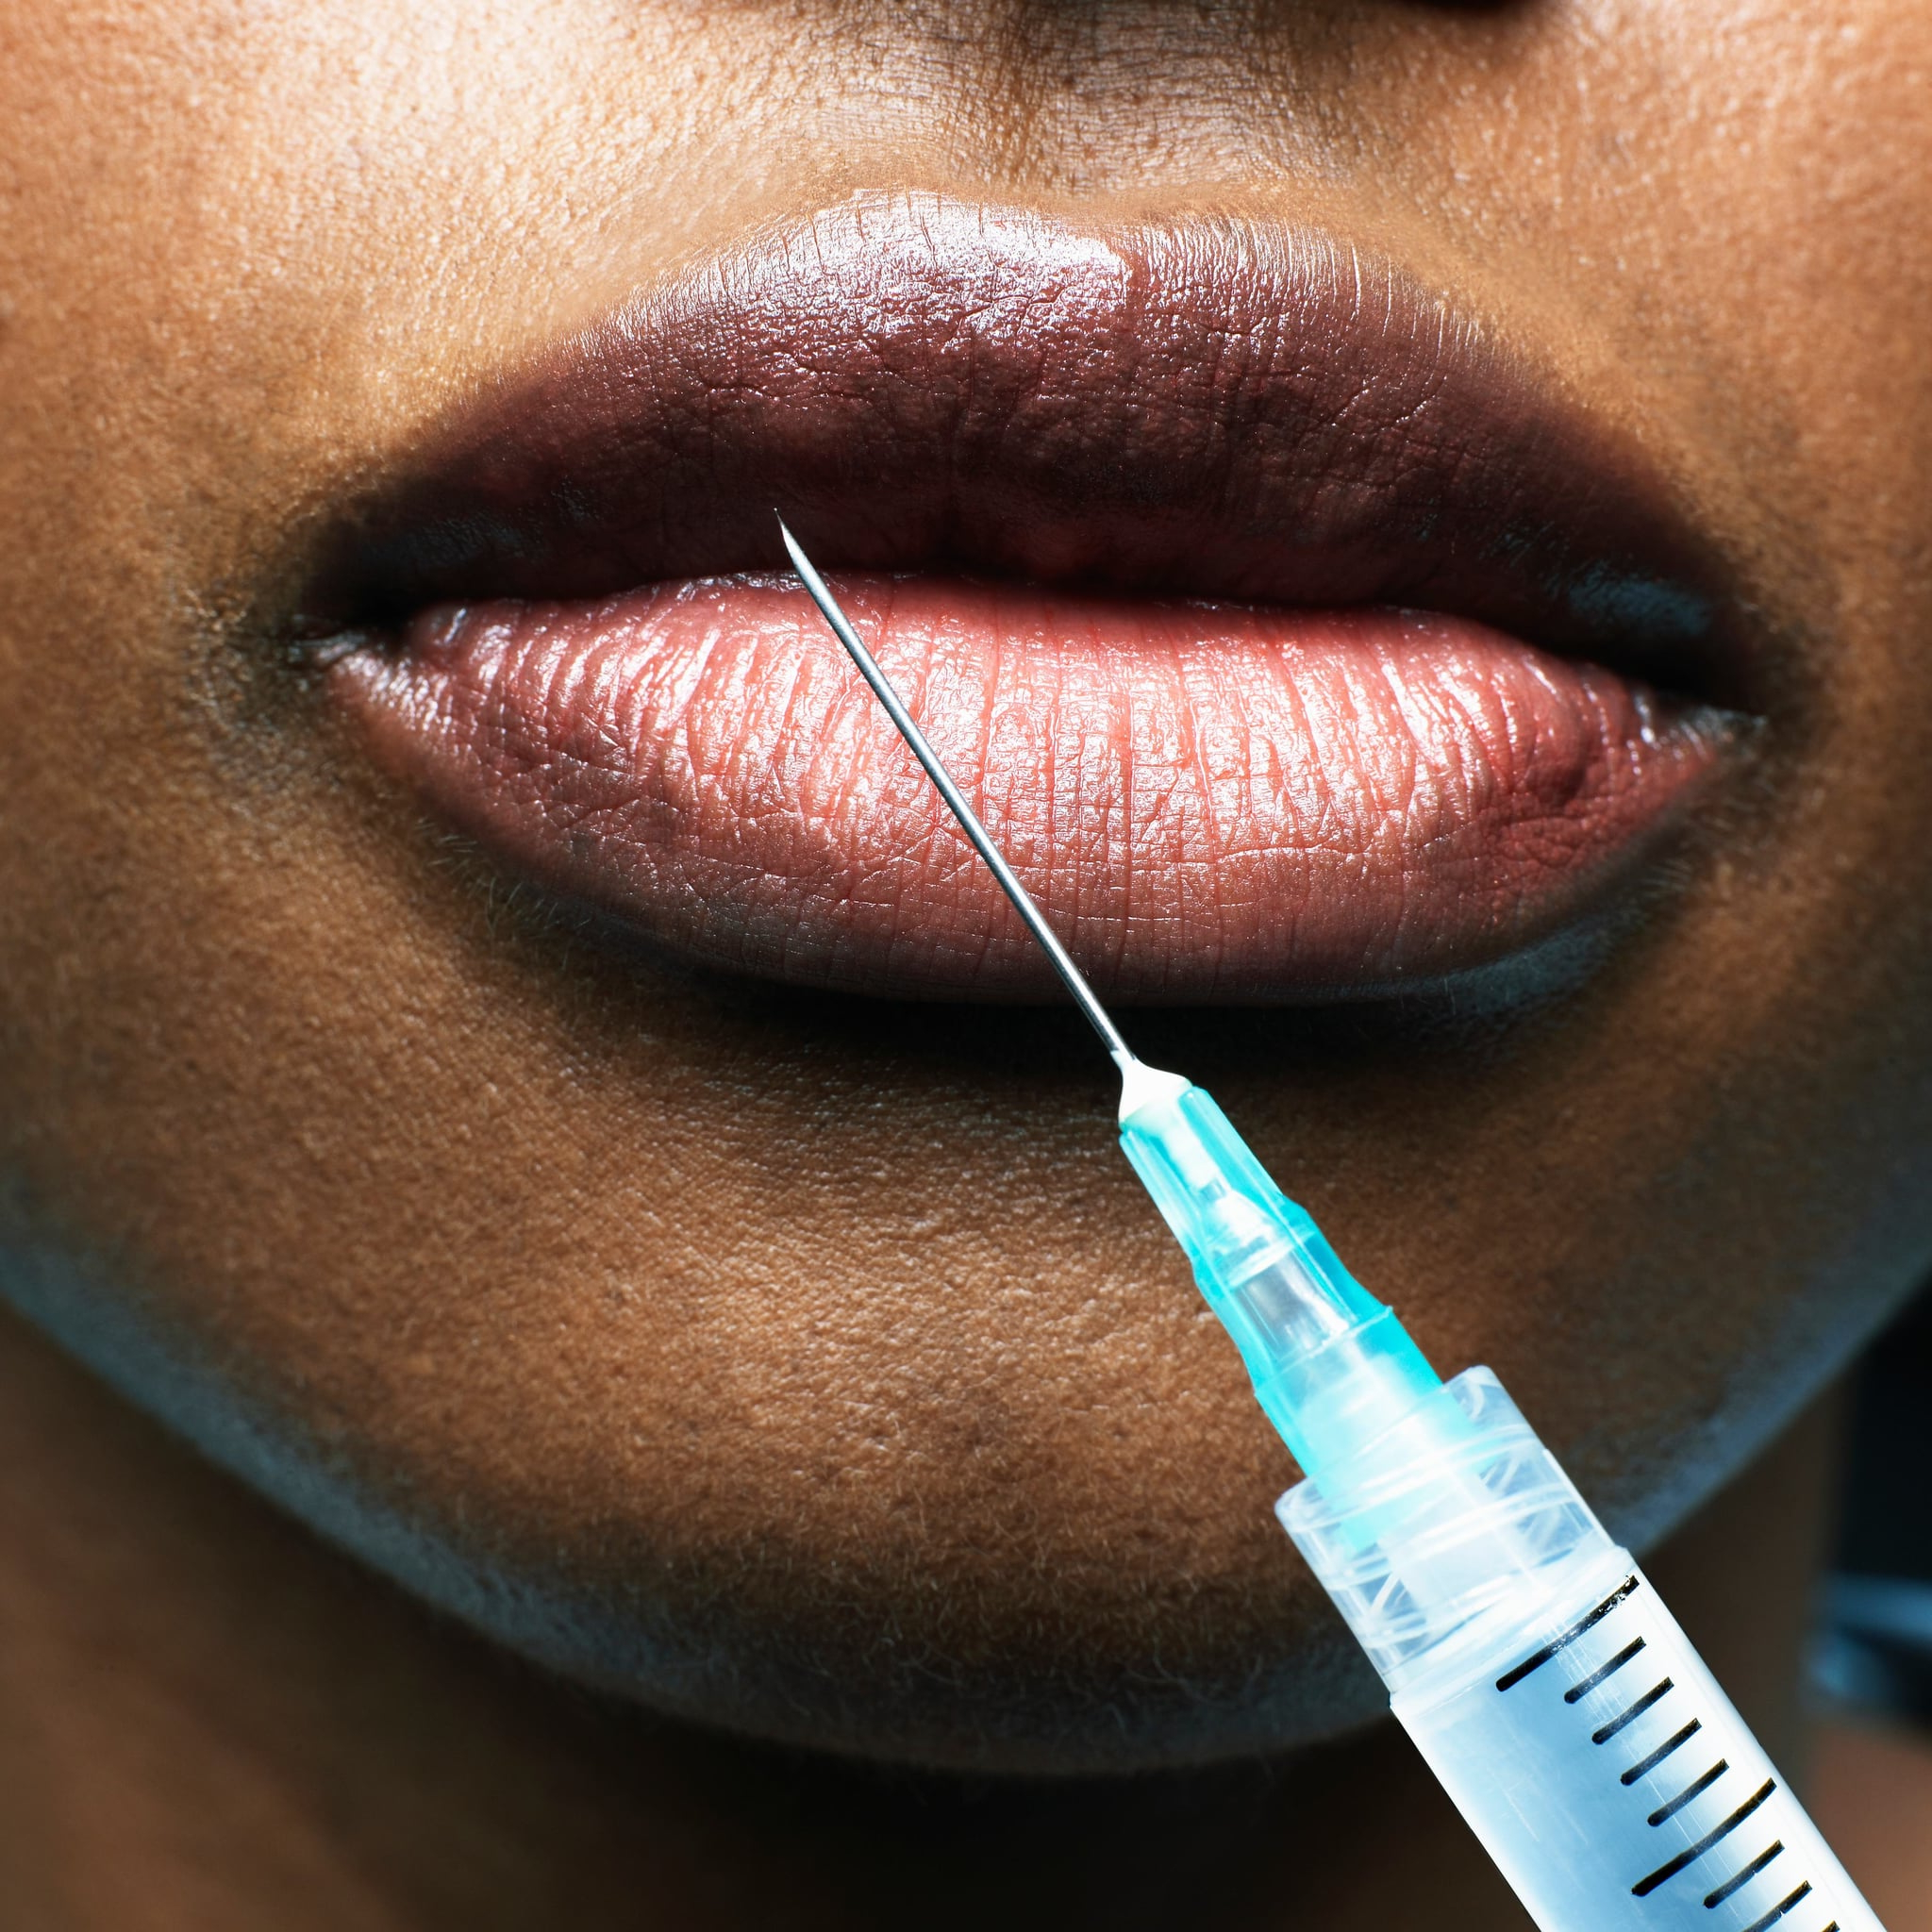 Style: 9 things I wish I'd known before getting Botox - PressFrom